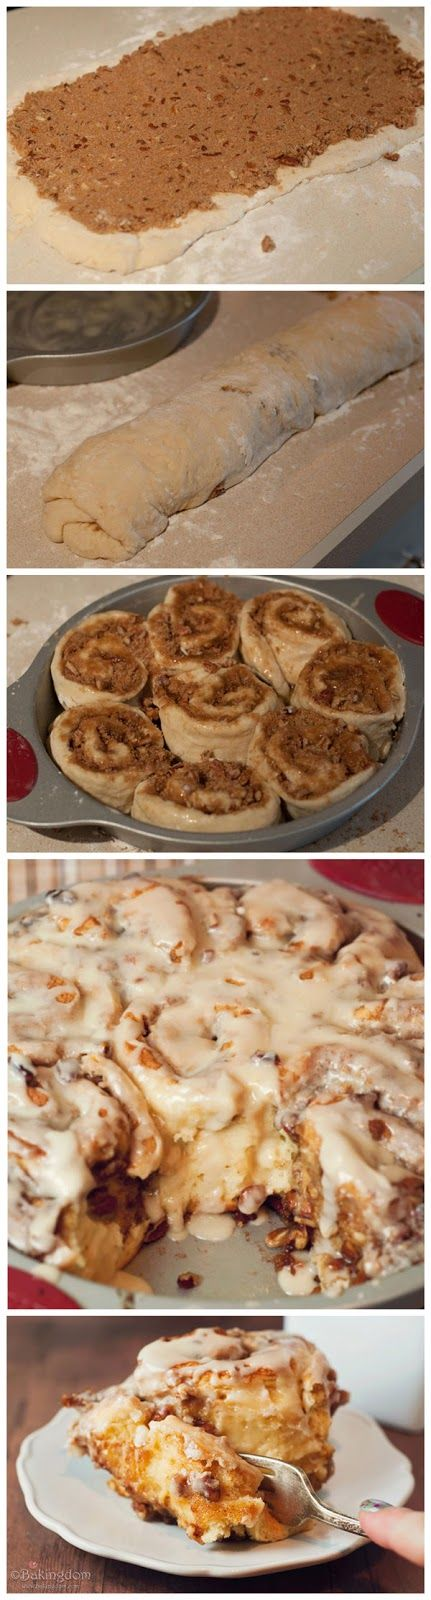 flavors of cinnamon, brown sugar and rich cream cheese frosting ...